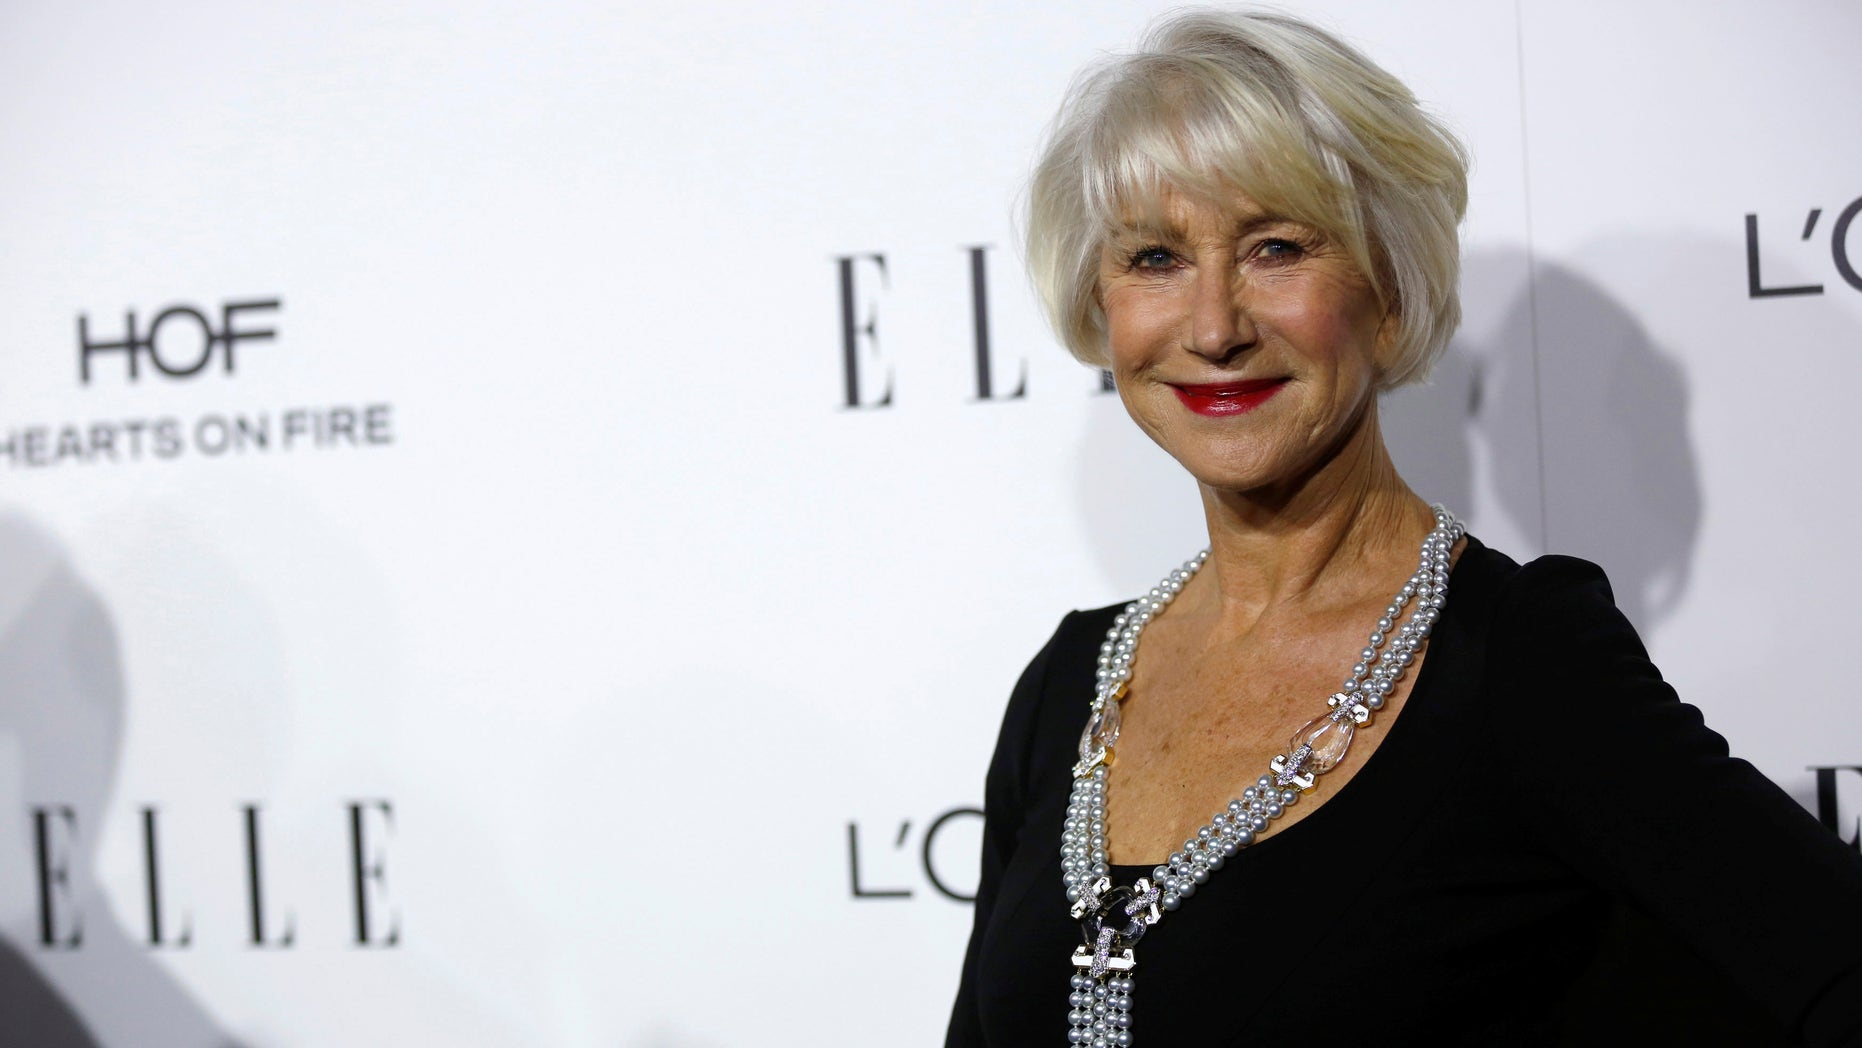 Actor and honoree Helen Mirren poses at the 23rd annual ELLE Women in Hollywood Awards in Los Angeles, California U.S., October 24, 2016.   REUTERS/Mario Anzuoni - RTX2QANQ